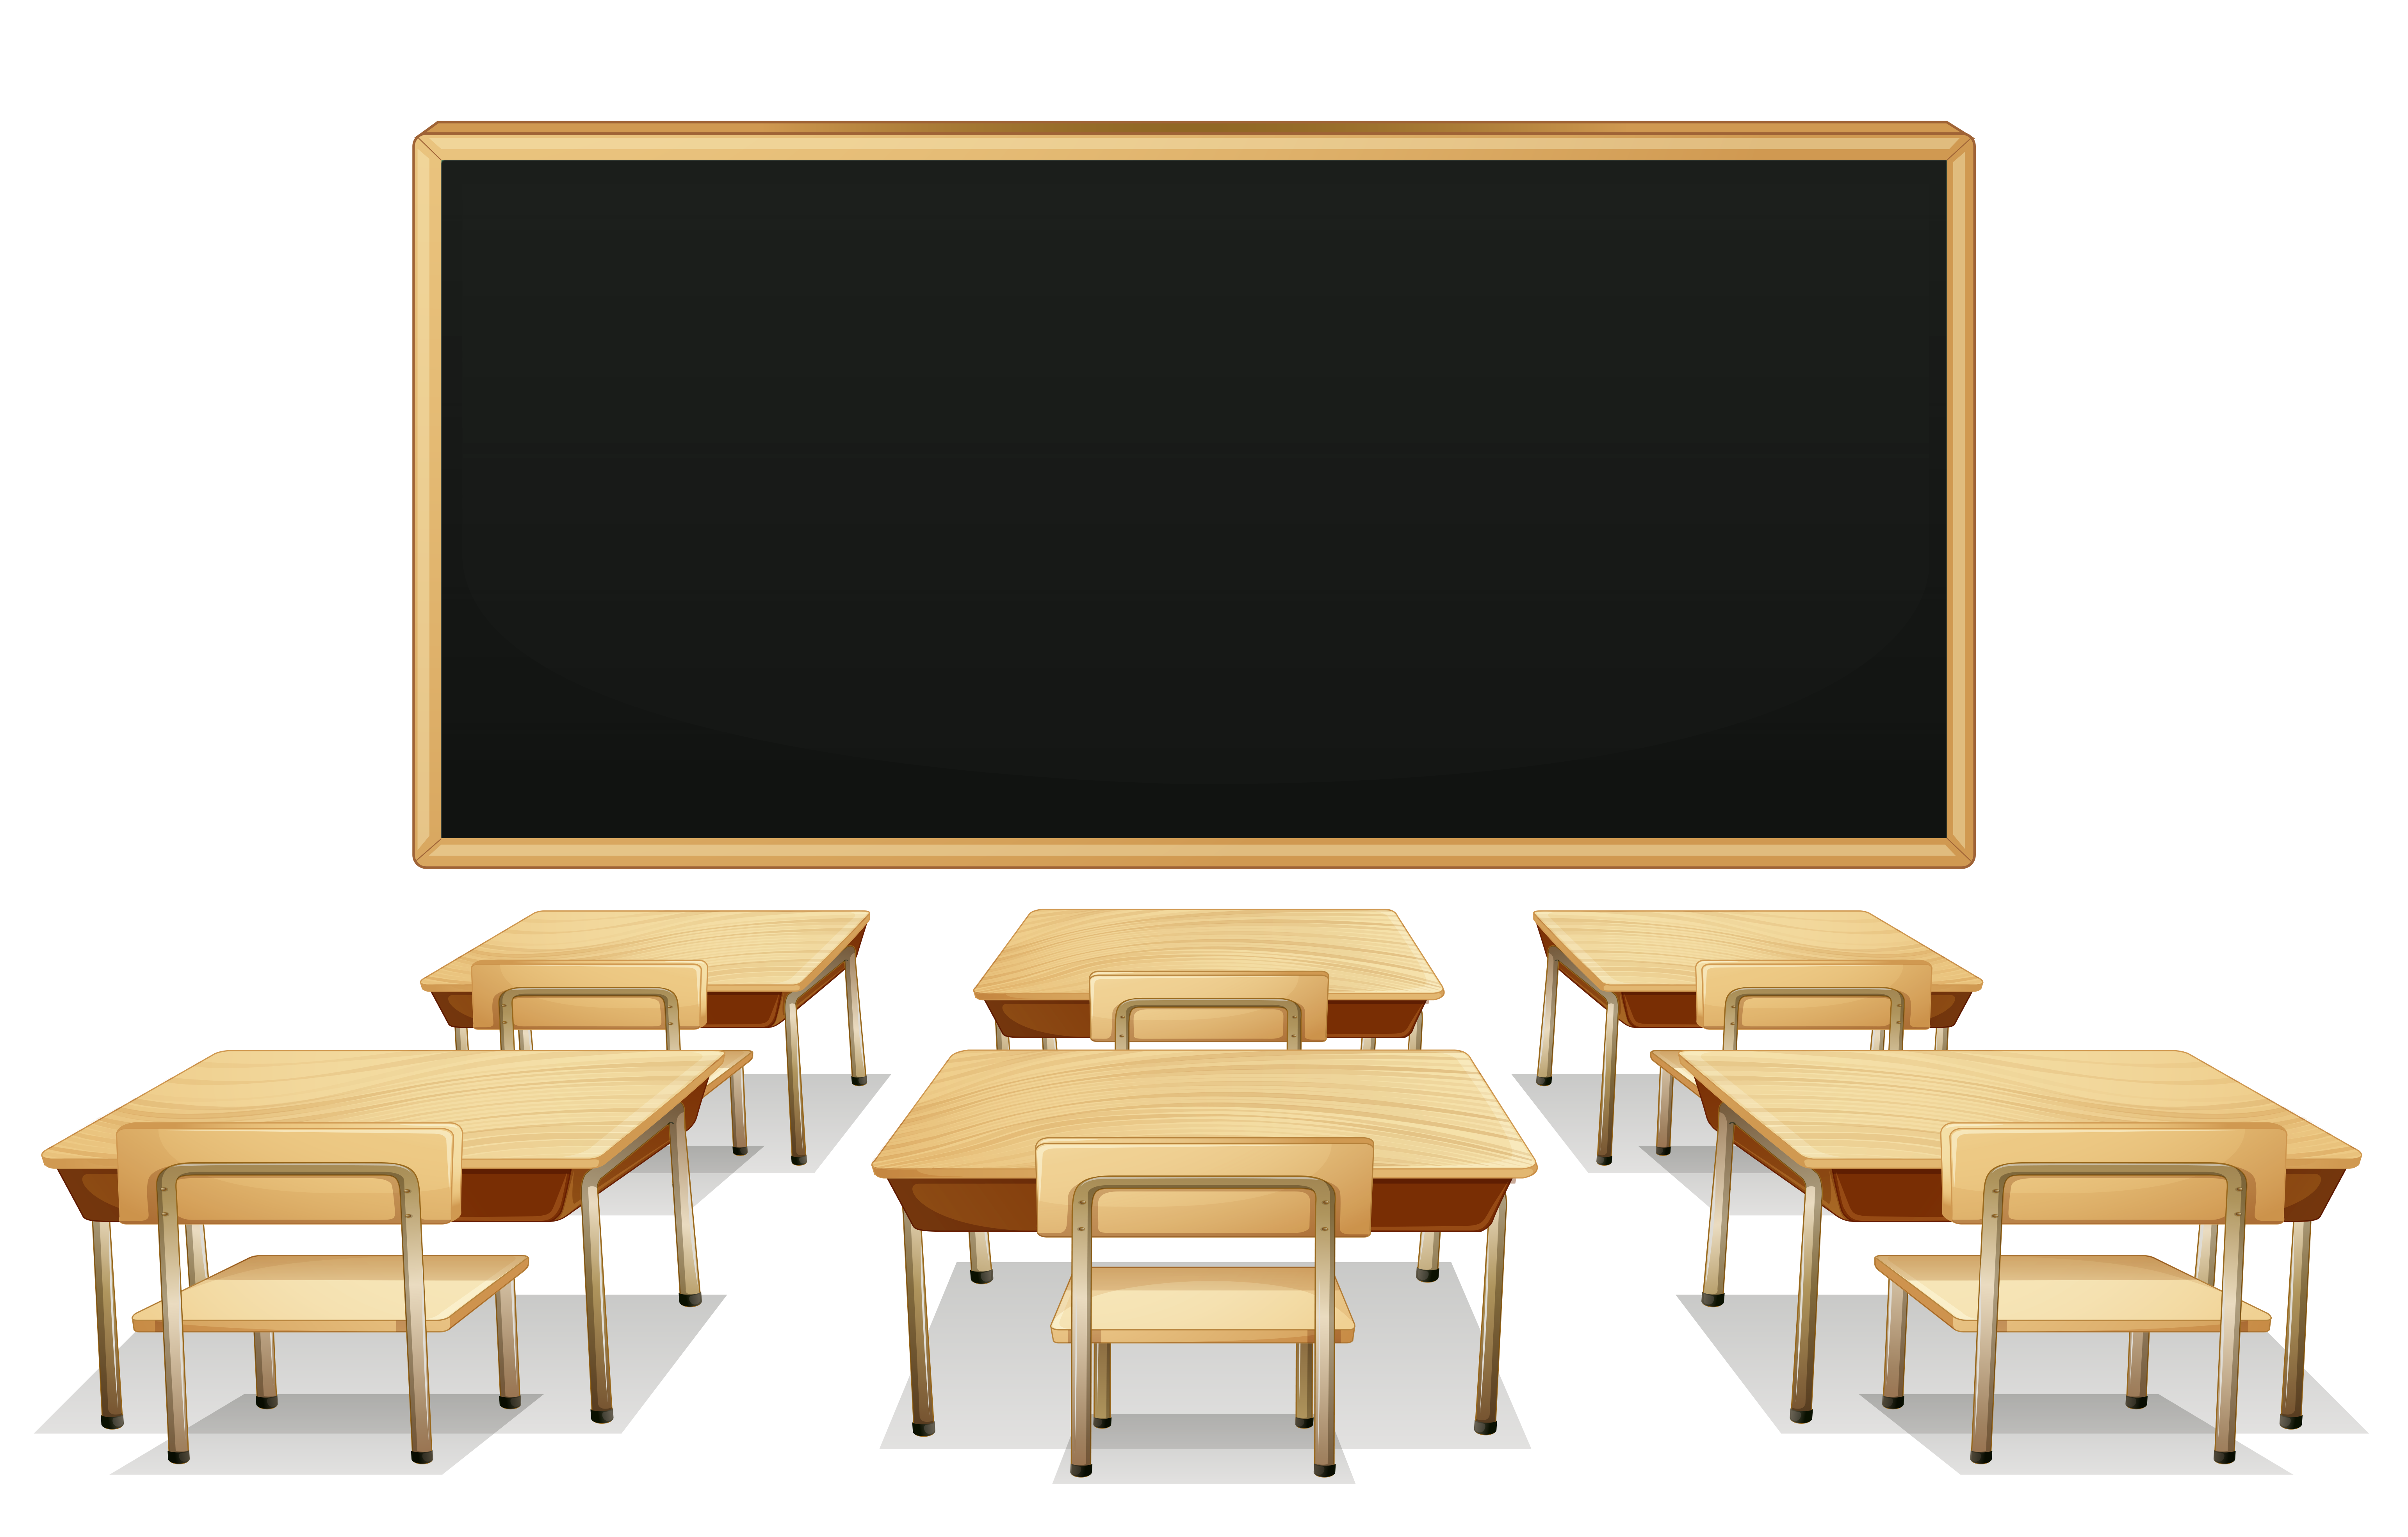 Classroom clipart. School with blackboard and